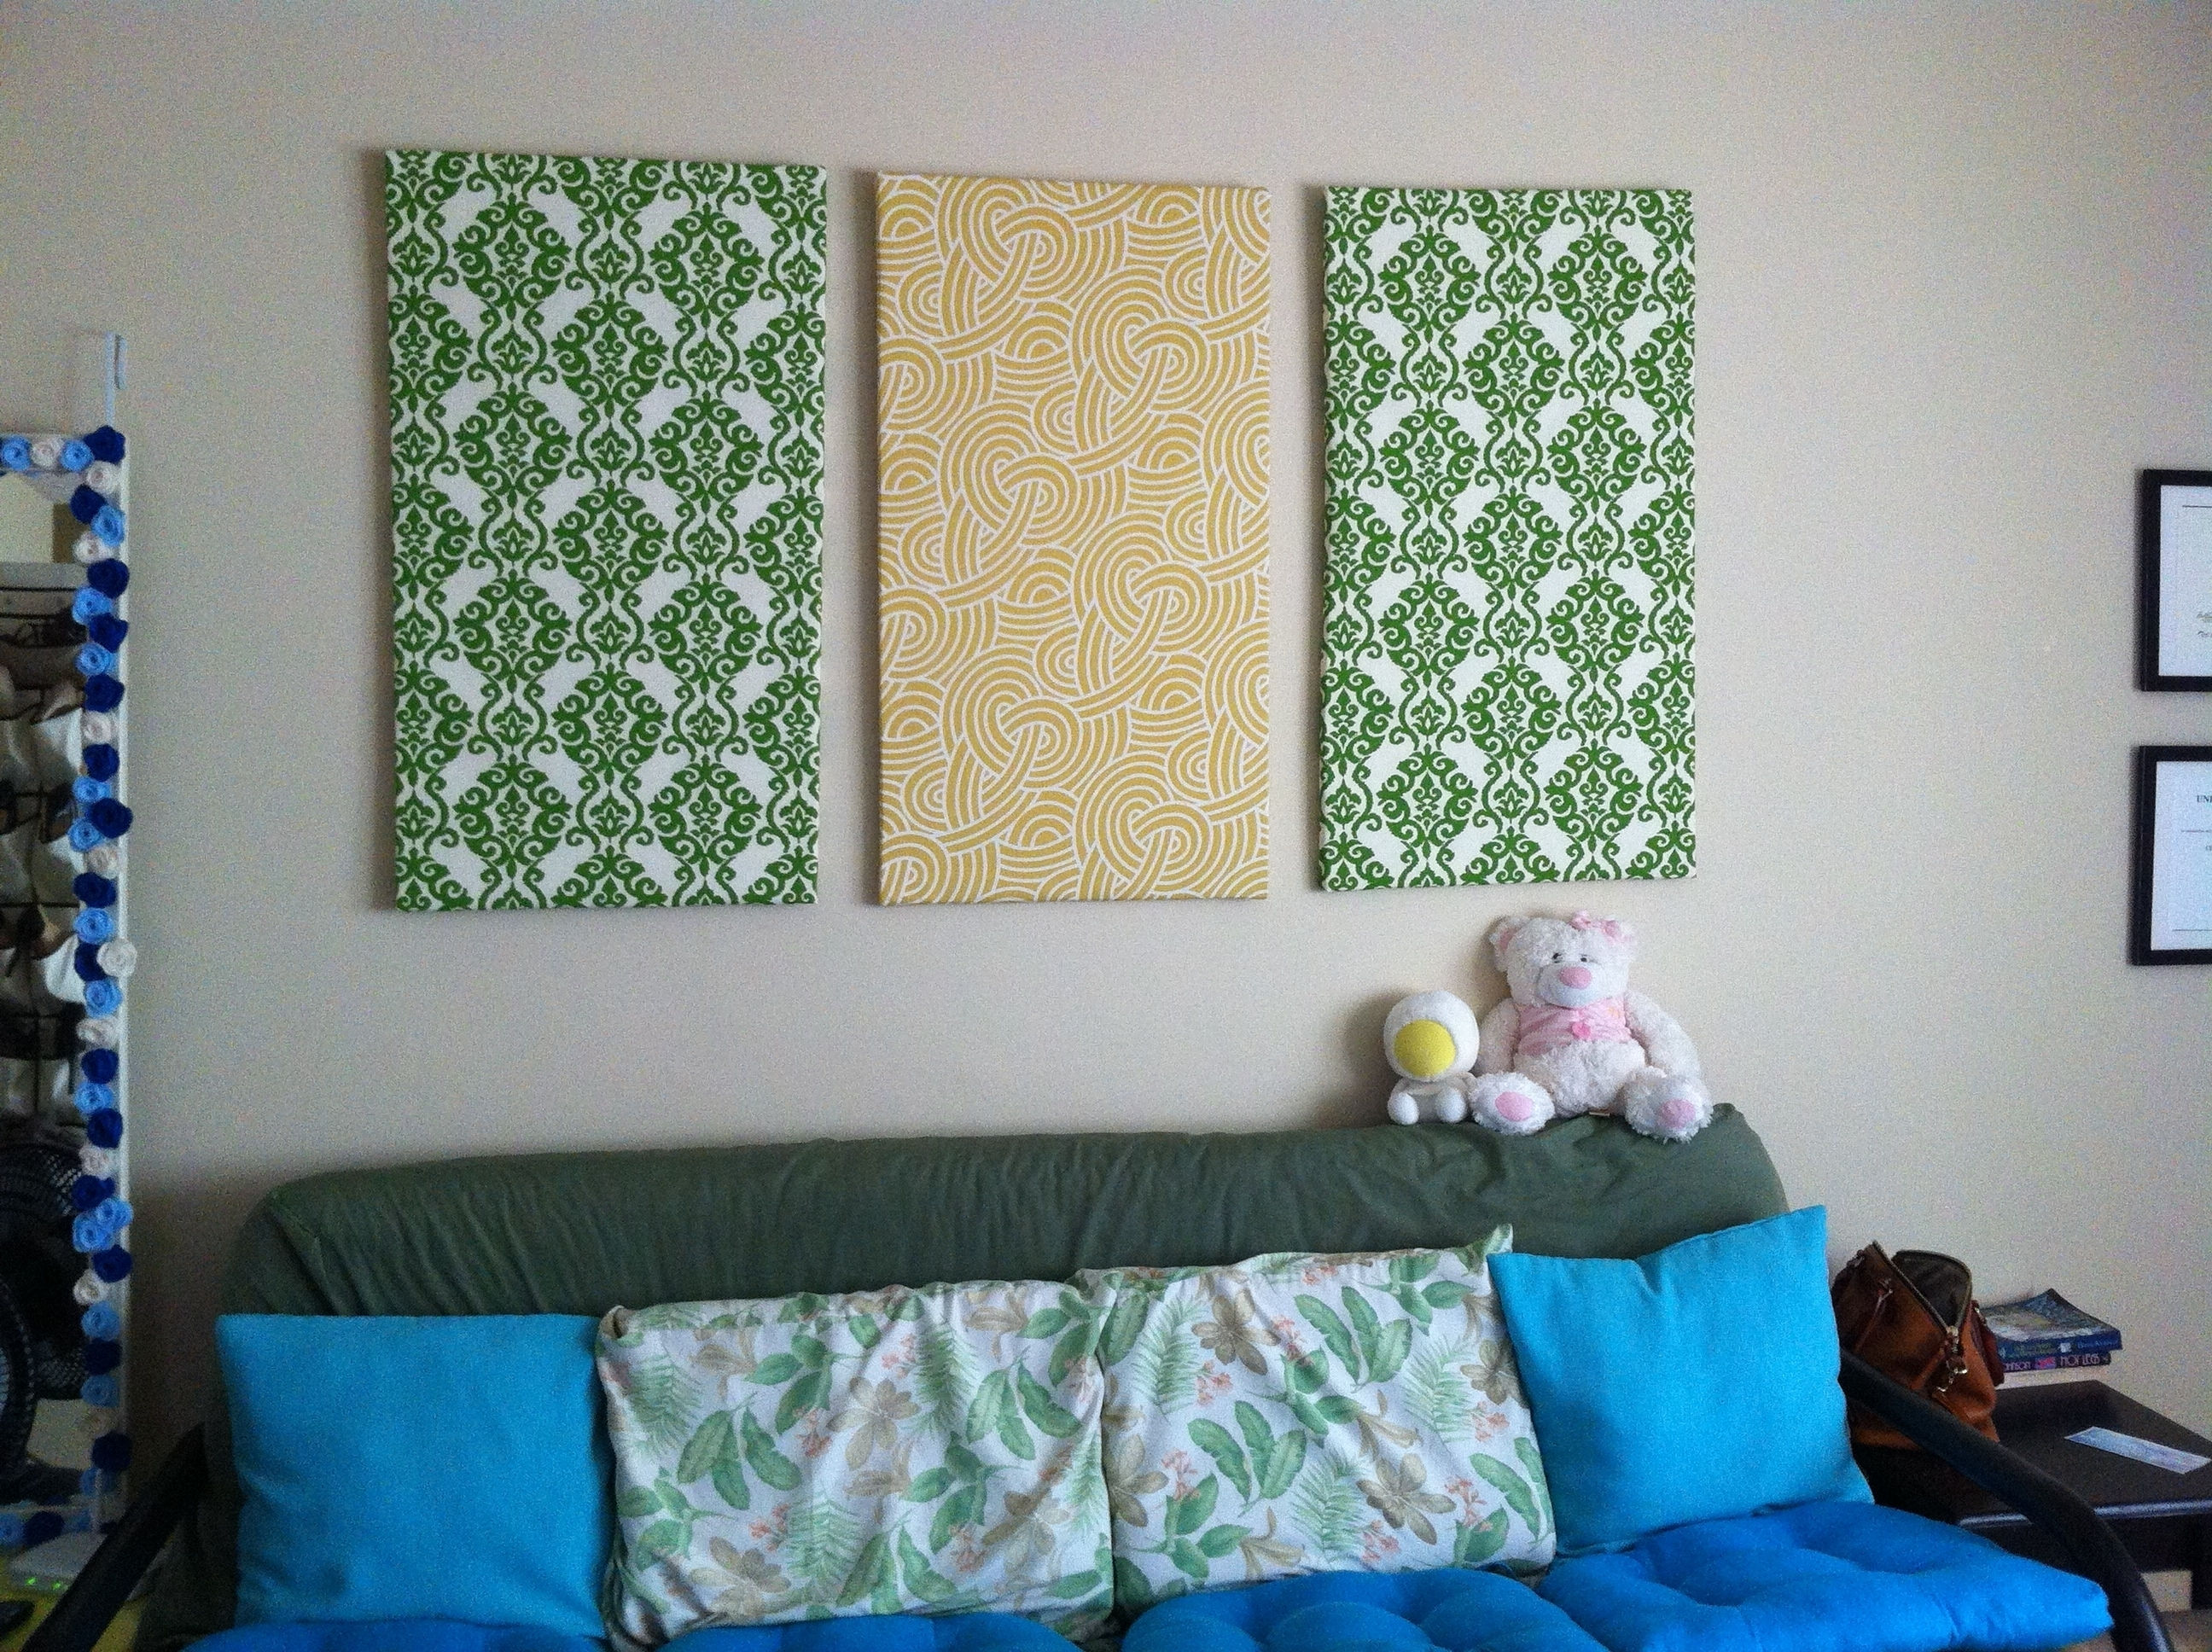 Some Kind Diy Wall Art To Decorating Homes — The Home Redesign Regarding Most Popular High End Fabric Wall Art (View 12 of 15)